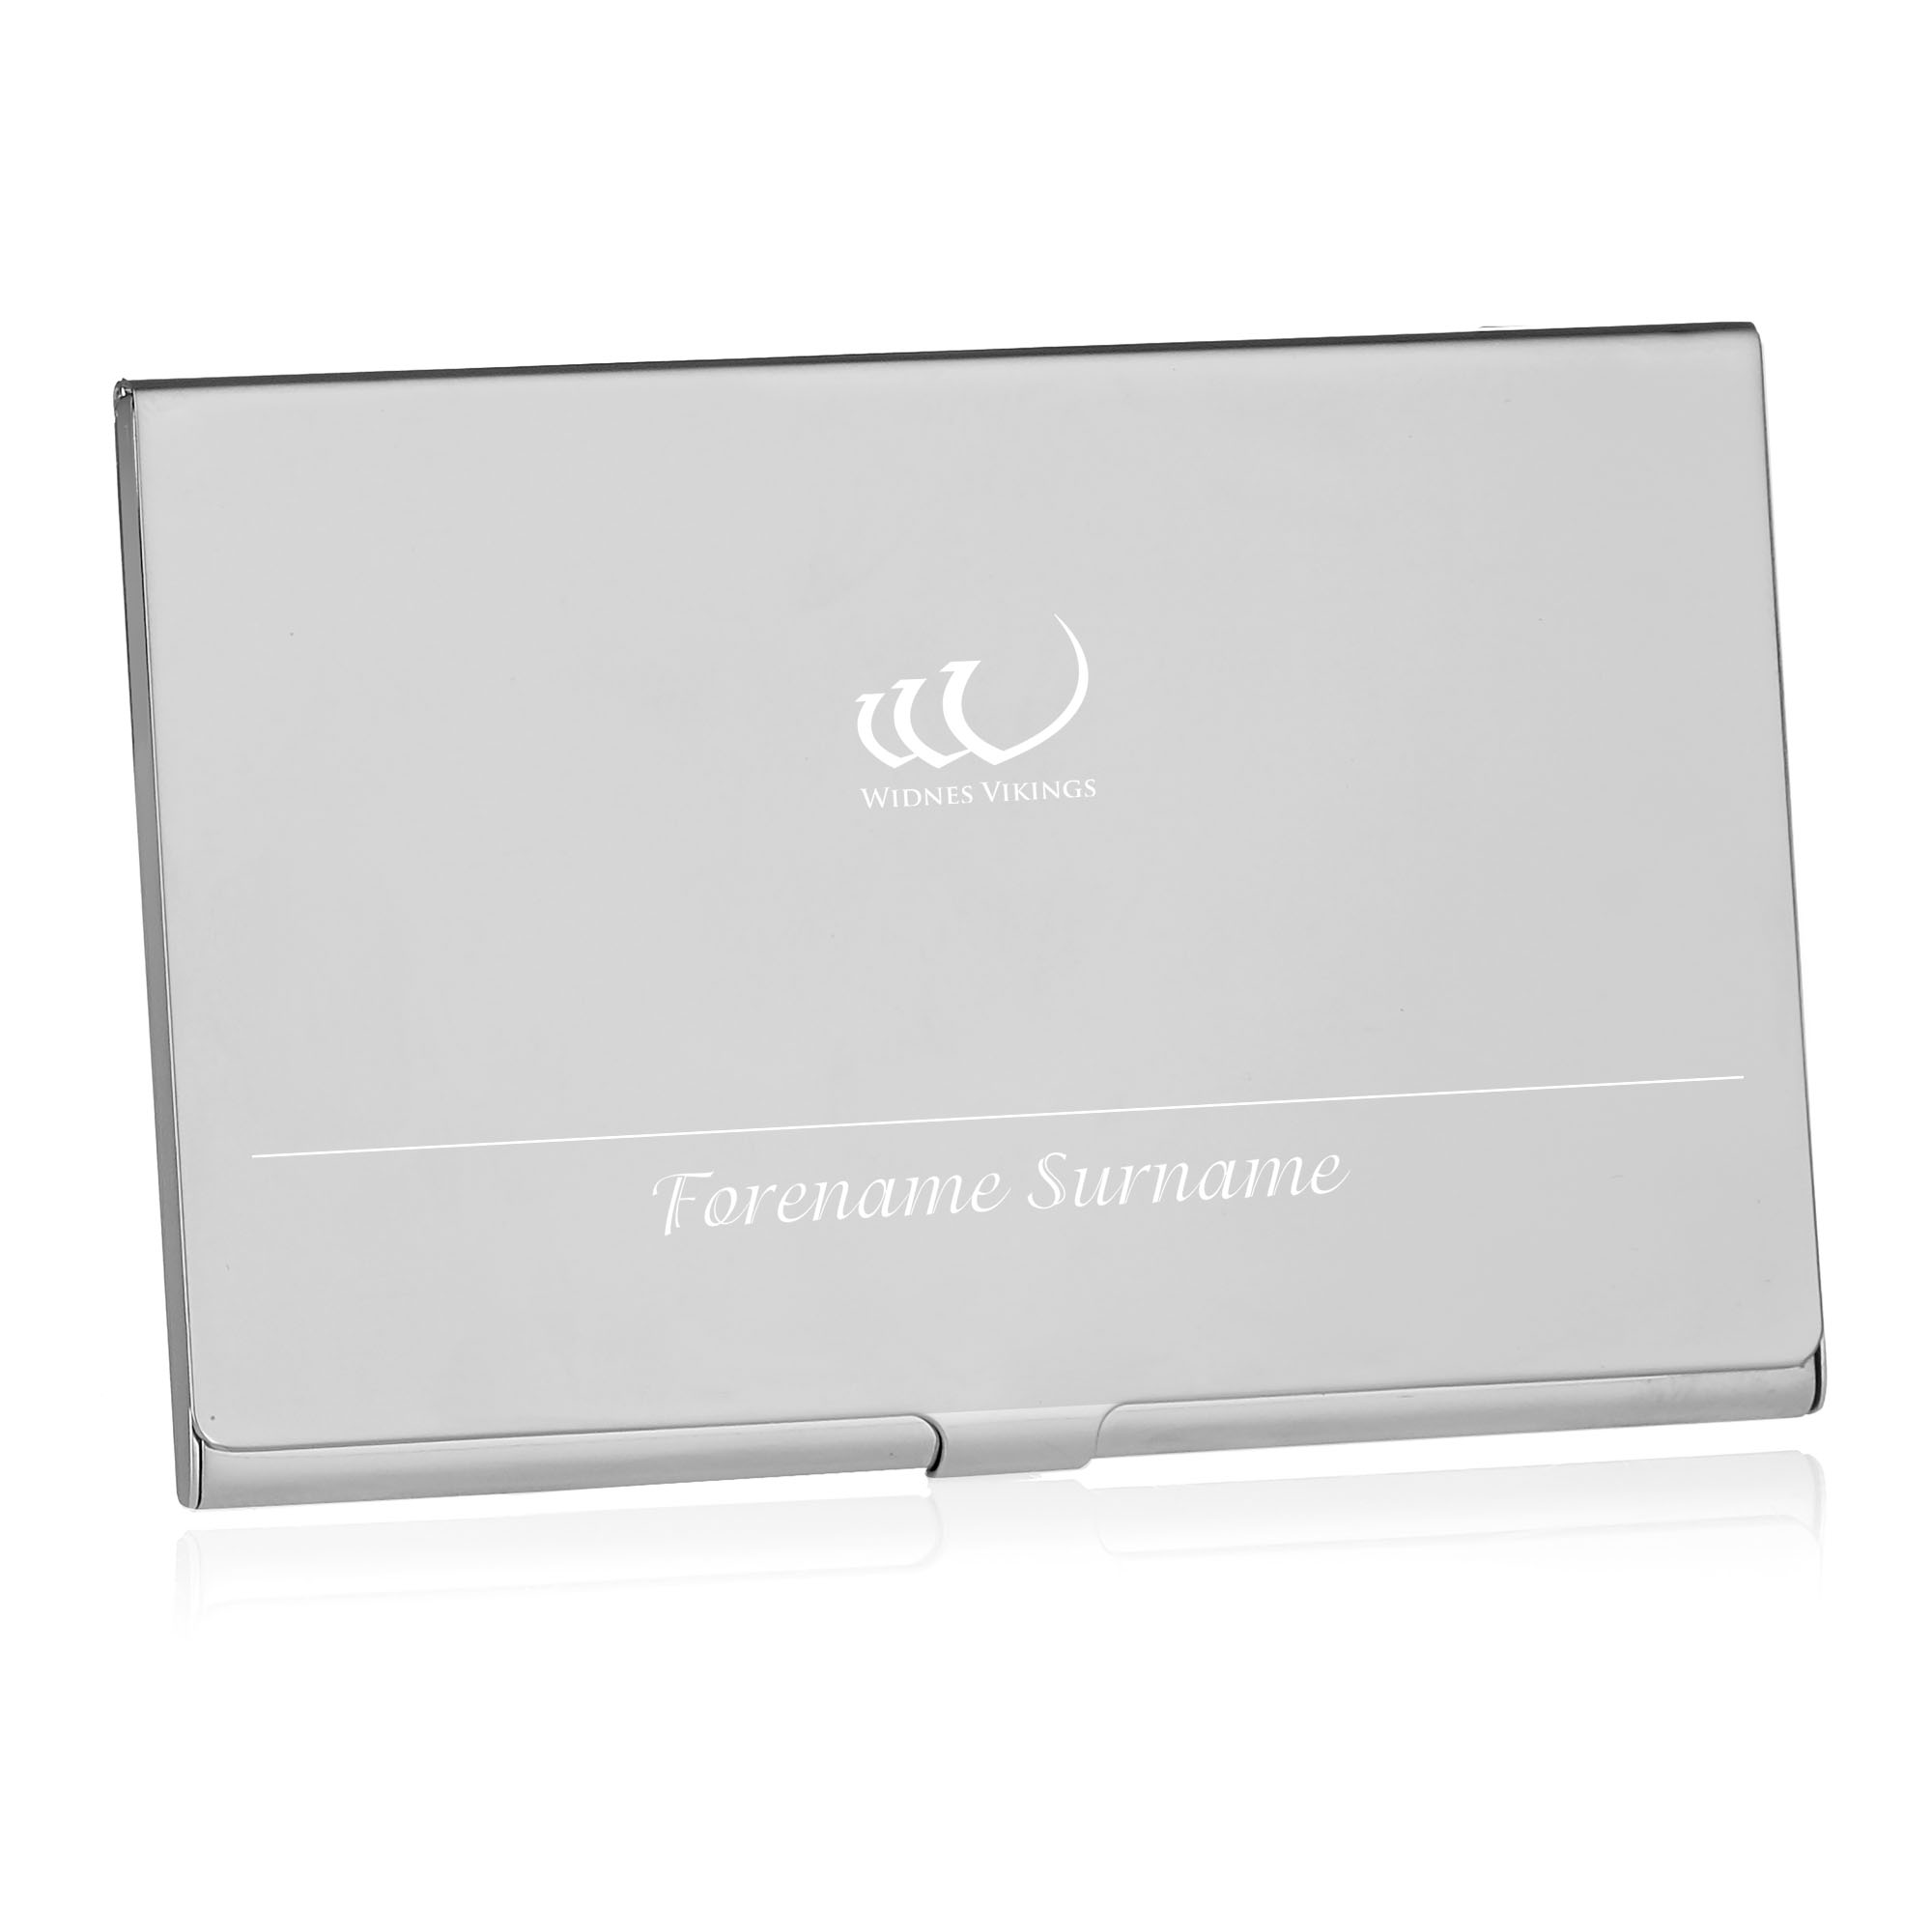 Widnes Vikings Executive Business Card Holder